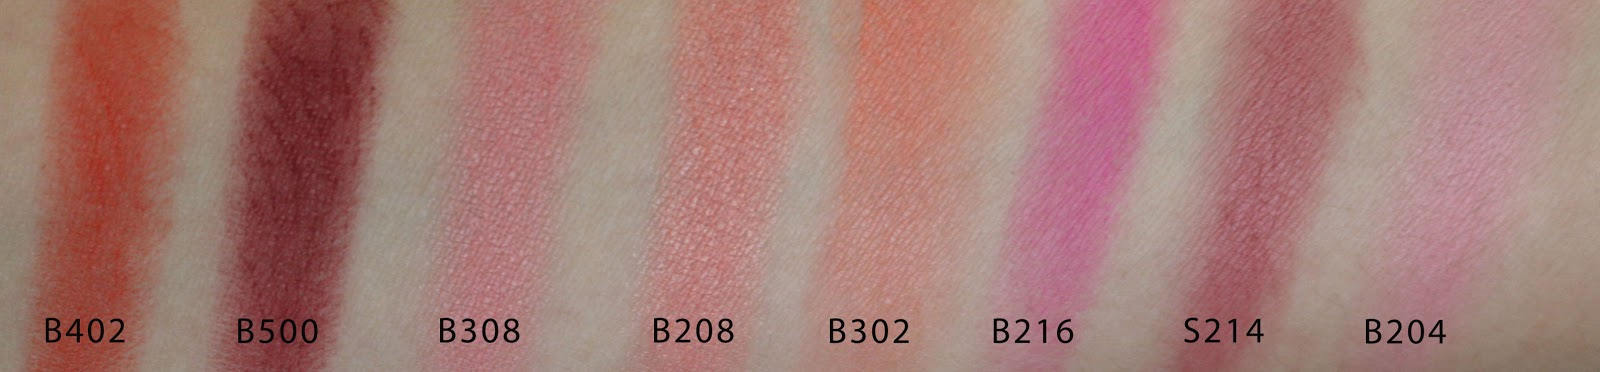 make up for ever artist face color B402 B500 B208 B302 B308 B216 S214 B204 swatches